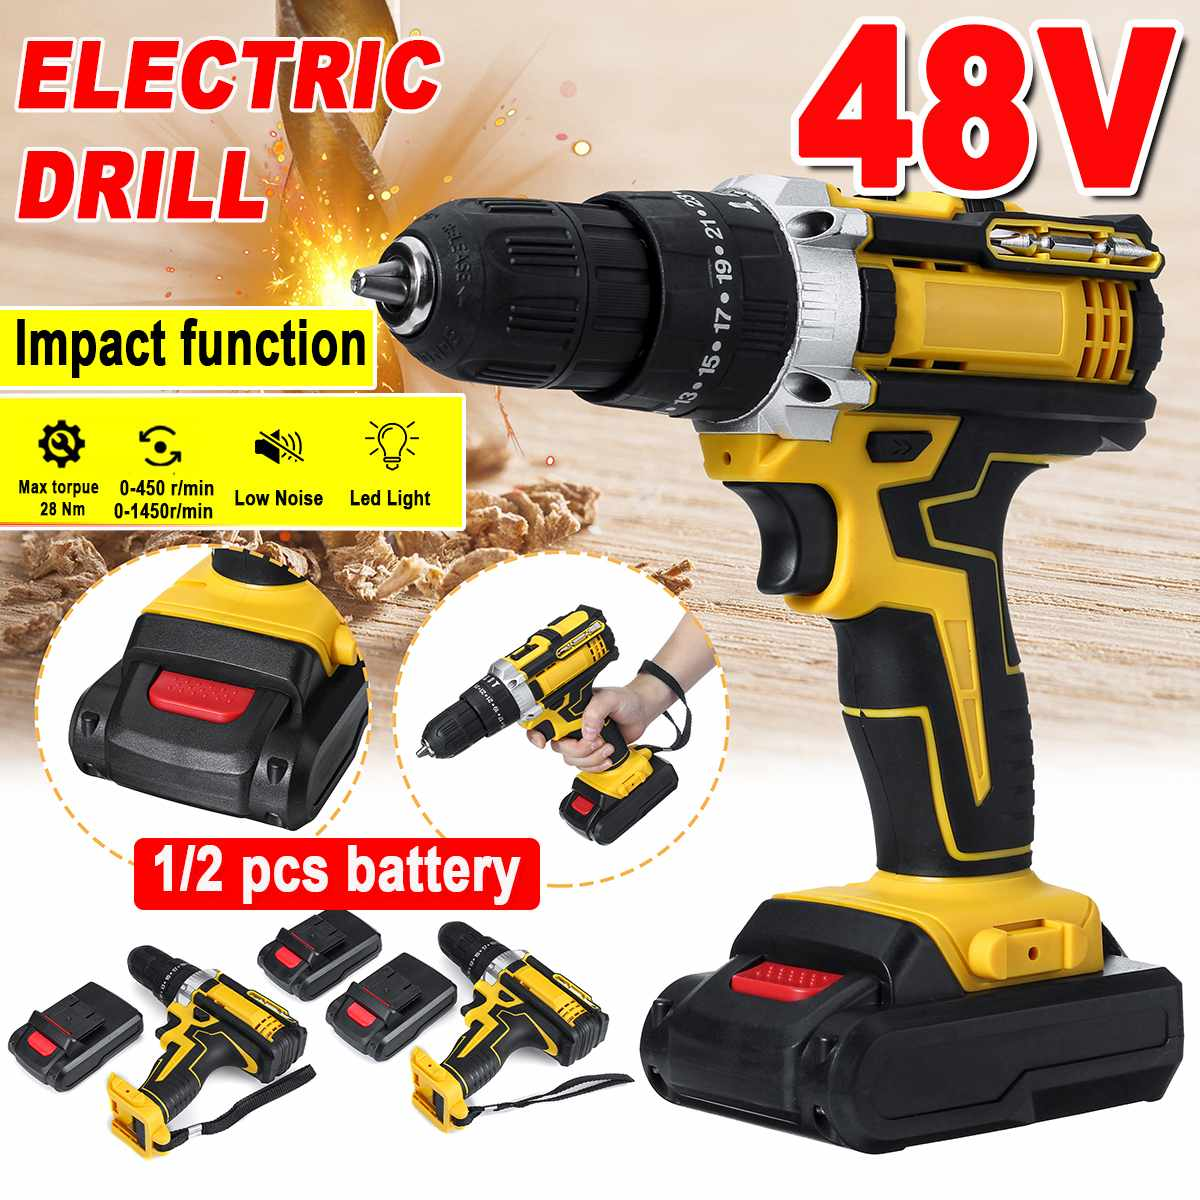 Professional 3 In 1 48V Max Electric Screwdriver Cordless Drill Impact Drill Power Driver DC Lithium-Ion Battery 2-Speed 25-28Nm image